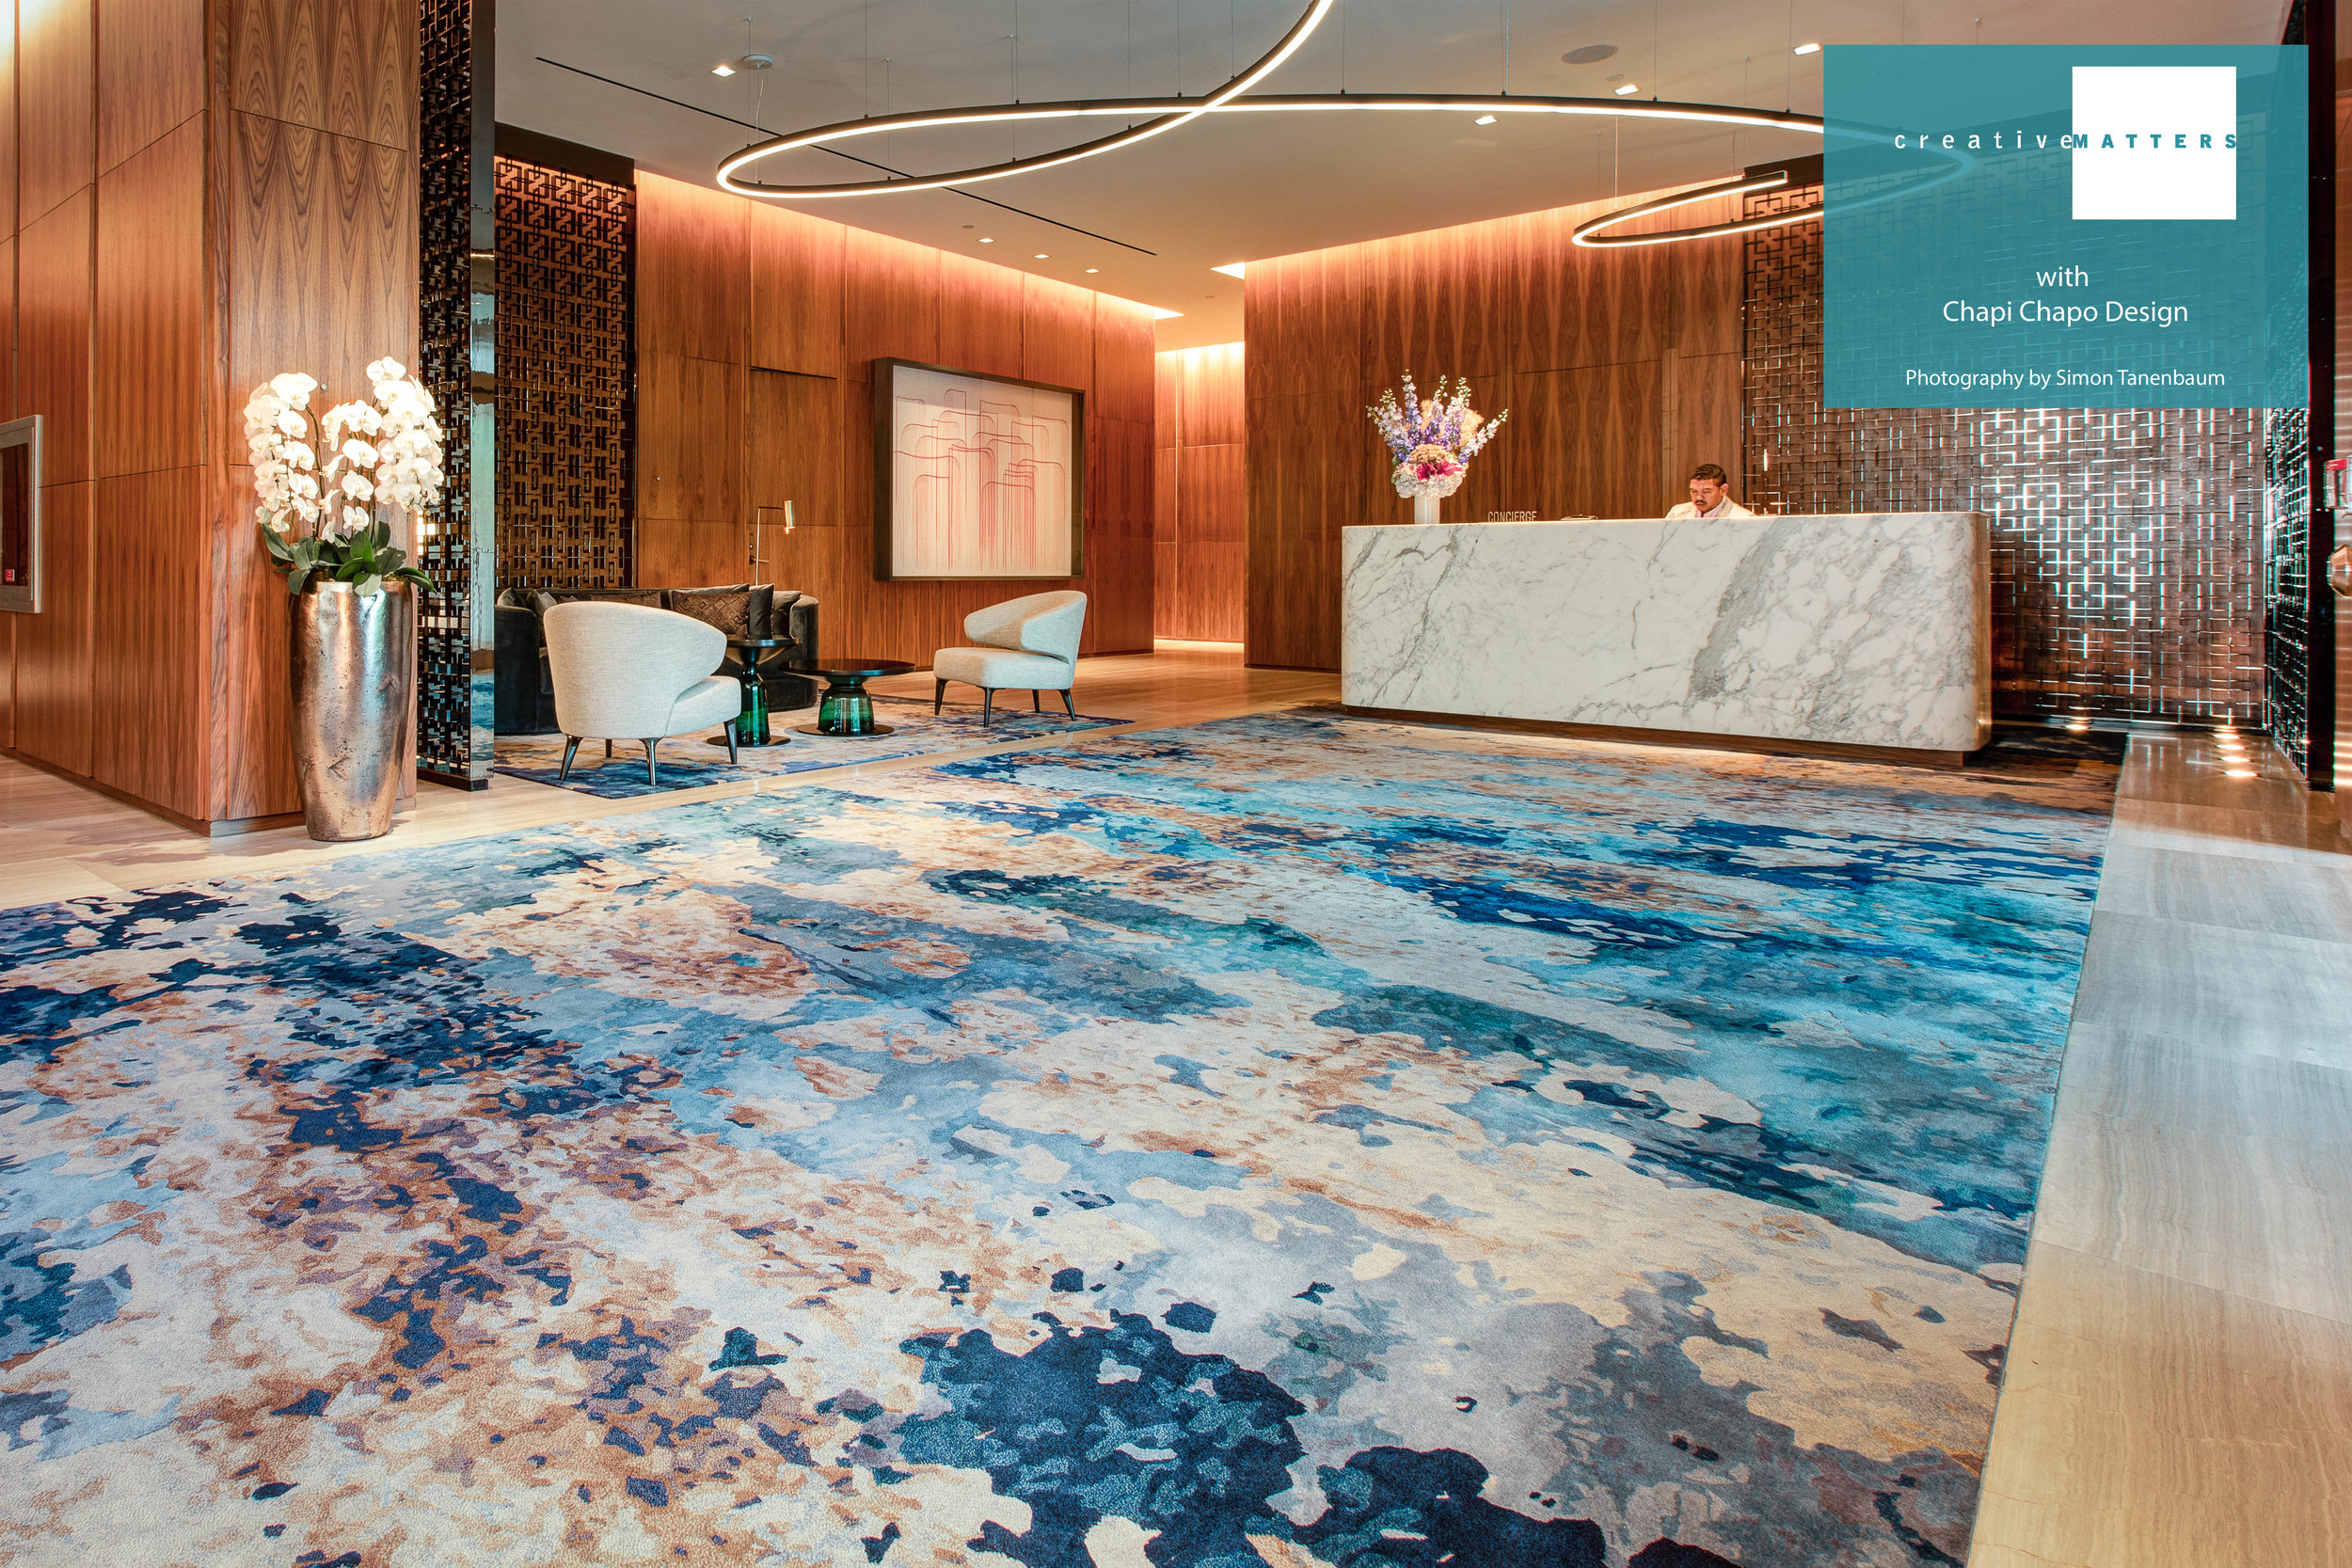 This exciting rug plays the role of a gigantic abstract painting bringing colour, drama and texture to the lobby of a particularly luxurious building. The brushstroke feel has been created by the imaginative and artisanal construction of various levels of cut and loop pile in a variety of colour blends. The wash of cool tones adds to the painterly effect while the warm tones capture the walnut wall feature. The highly sophisticated rug is part of a collection for the lobby – we also created one for the sitting area, a set of runners for the elevators and special pieces for the elevator cabs.  Project: Toronto private residences lobby Rug: handtufted wool and shiny nylon Interior Designer: Chapi Chapo Design Creative Matters Designer: Anna Panosyan